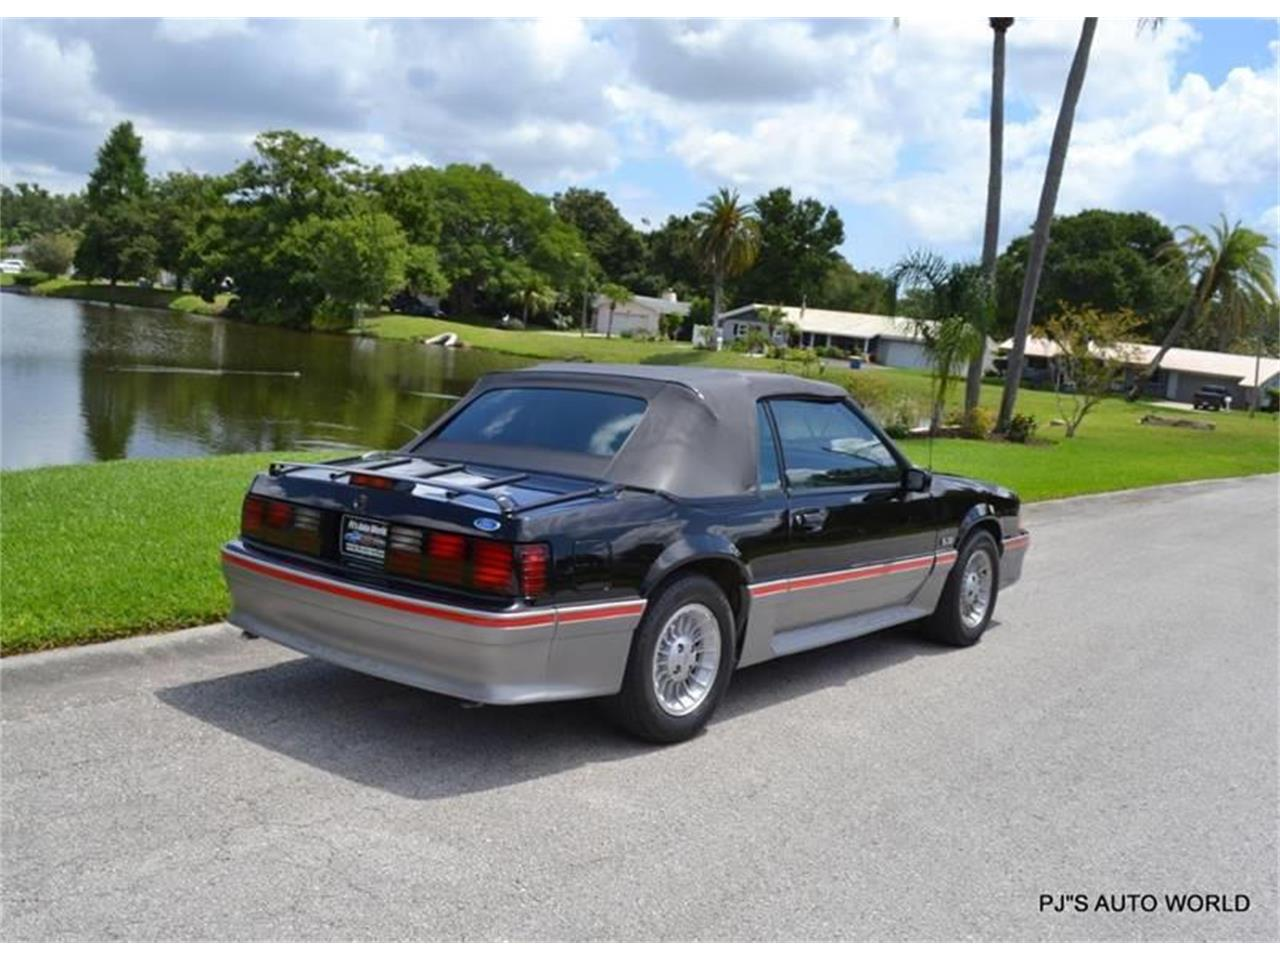 Large Picture of 1989 Ford Mustang located in Florida - $17,900.00 - NGI8